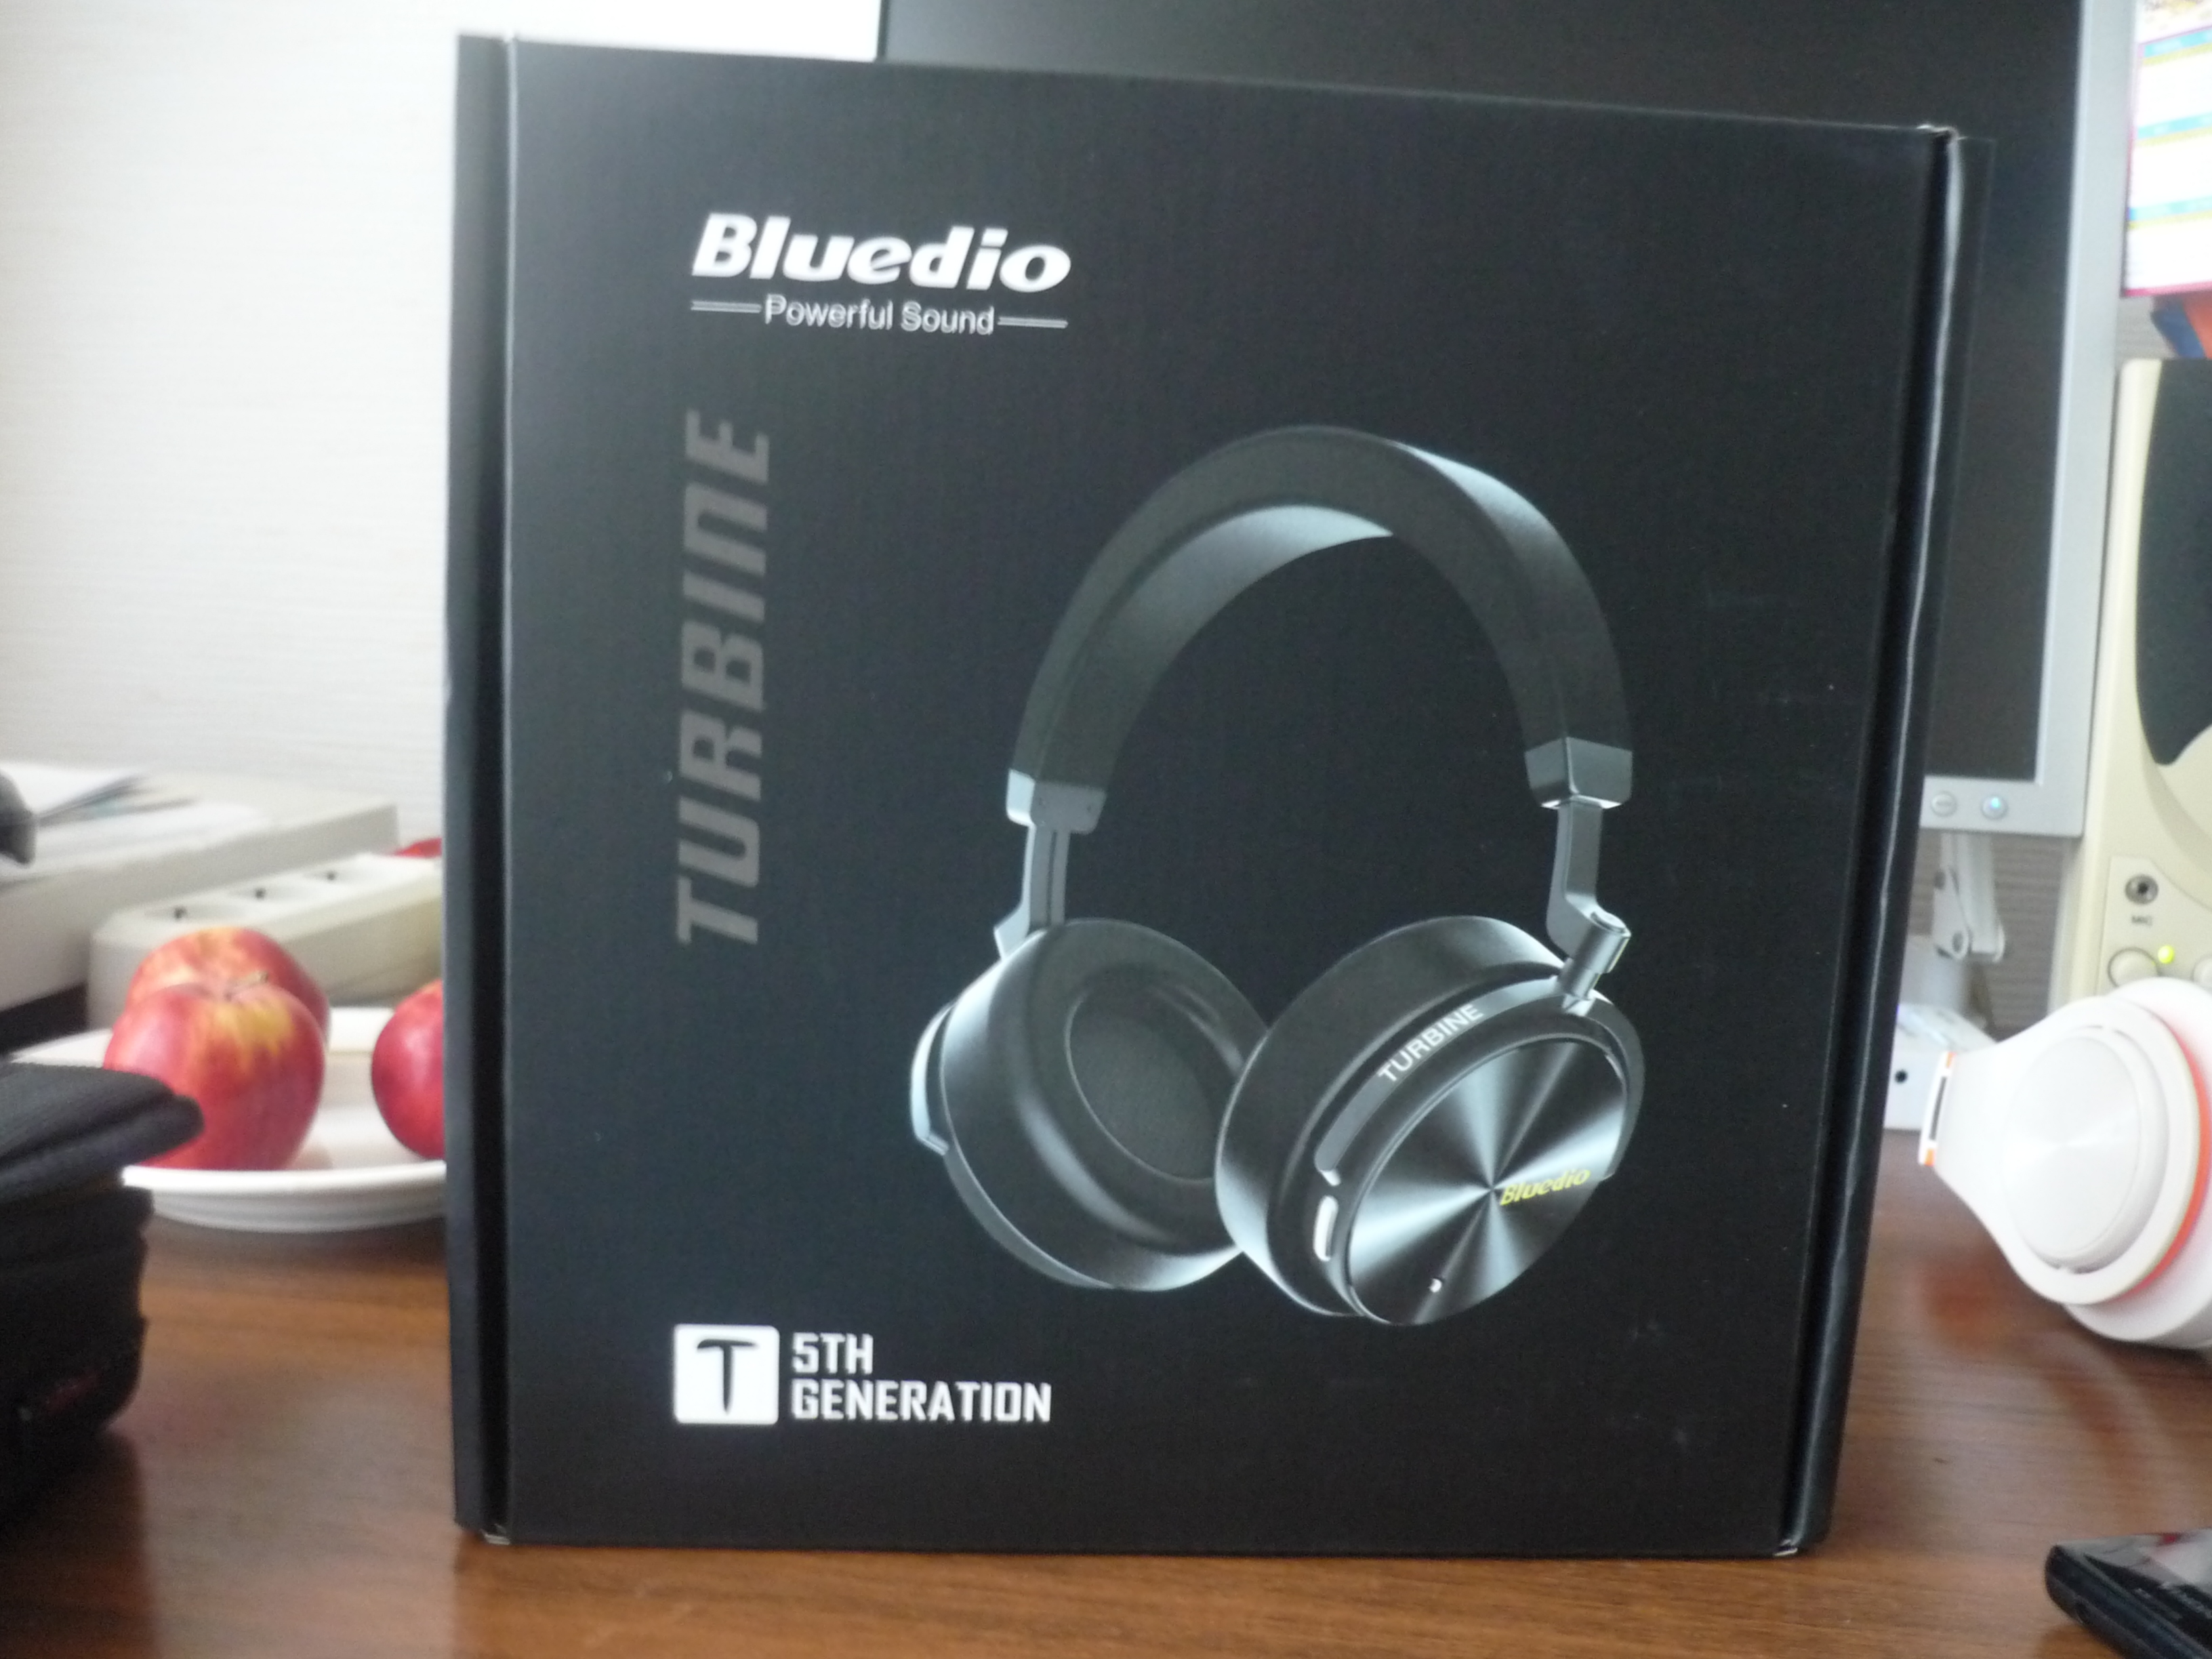 Bluedio T5 Active Noise Cancelling Wireless Bluetooth Headphones Portable Headset with microphone for phones and music-in Phone Earphones & Headphones from Consumer Electronics on AliExpress